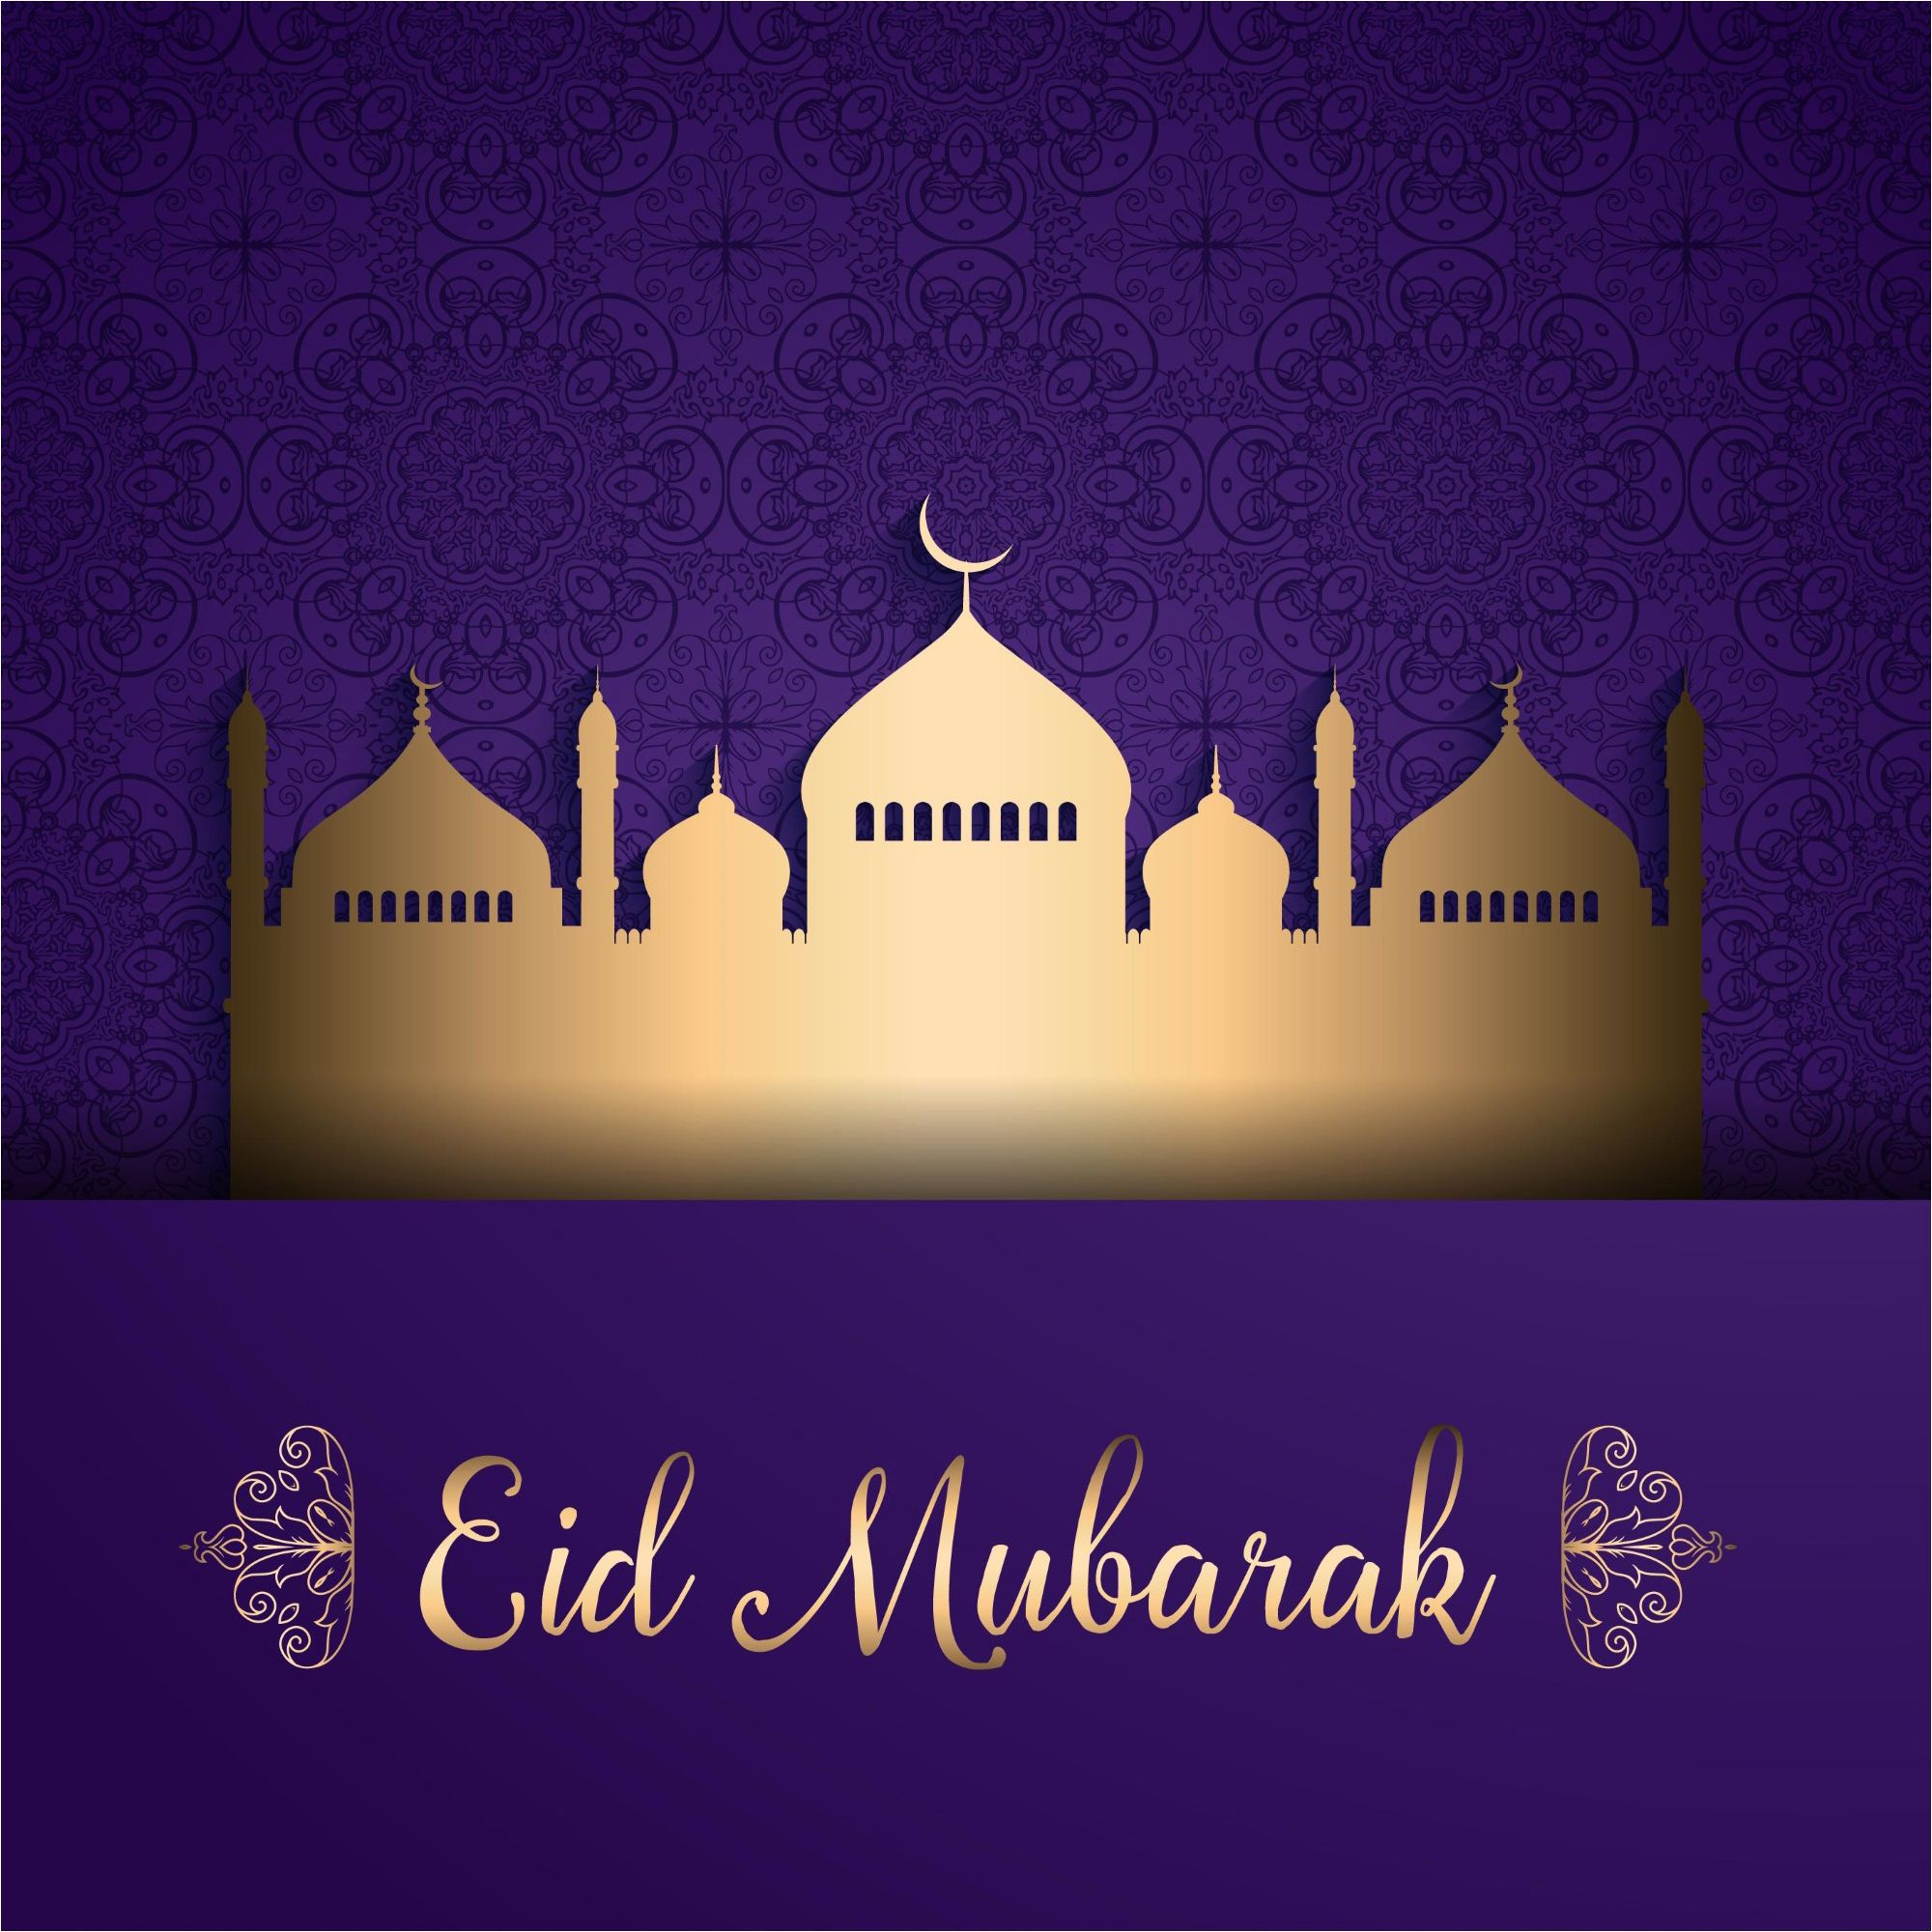 Eid mubarak 2017 beautiful background vector download free http eid mubarak 2017 beautiful background vector download free httpcgvector kristyandbryce Image collections